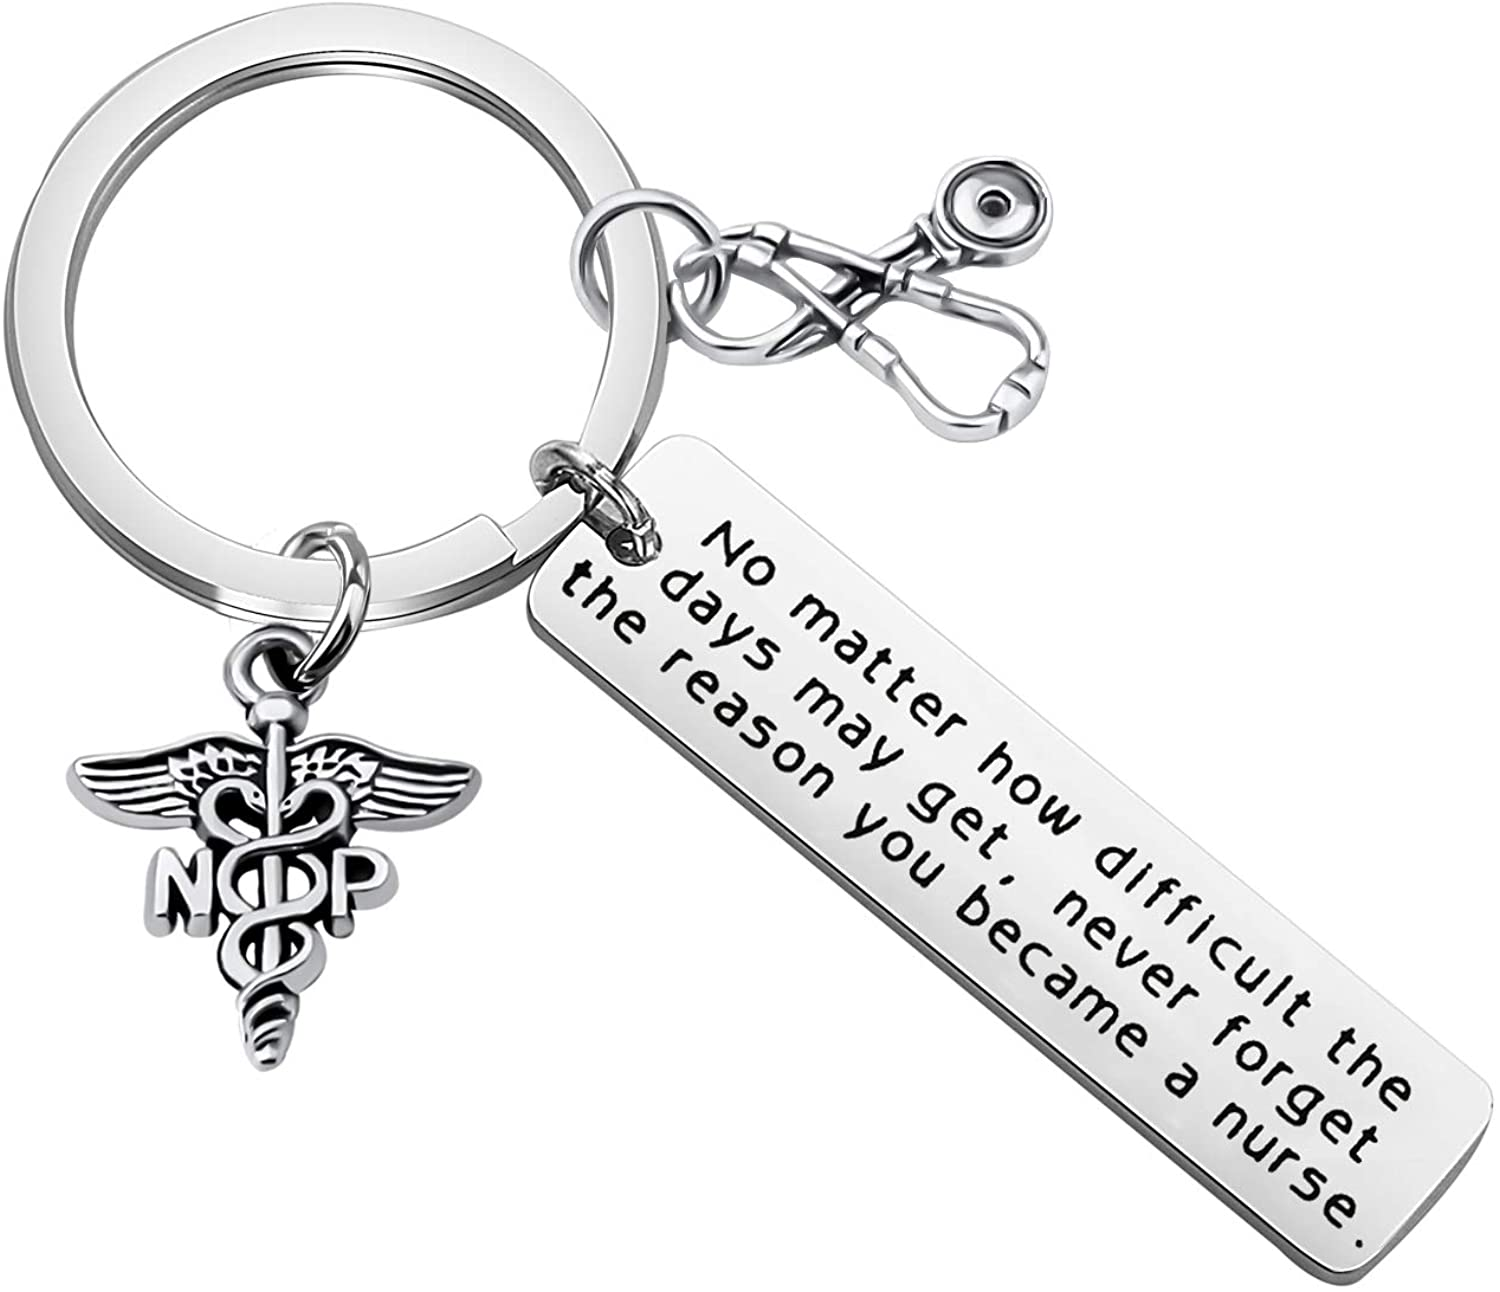 FUSTMW Nurse Practitioner Gift NP Key Chain NP Gift Stethoscope Charm Jewelry Nurse Gift NP Graduation Gift for Nurse Practitioner